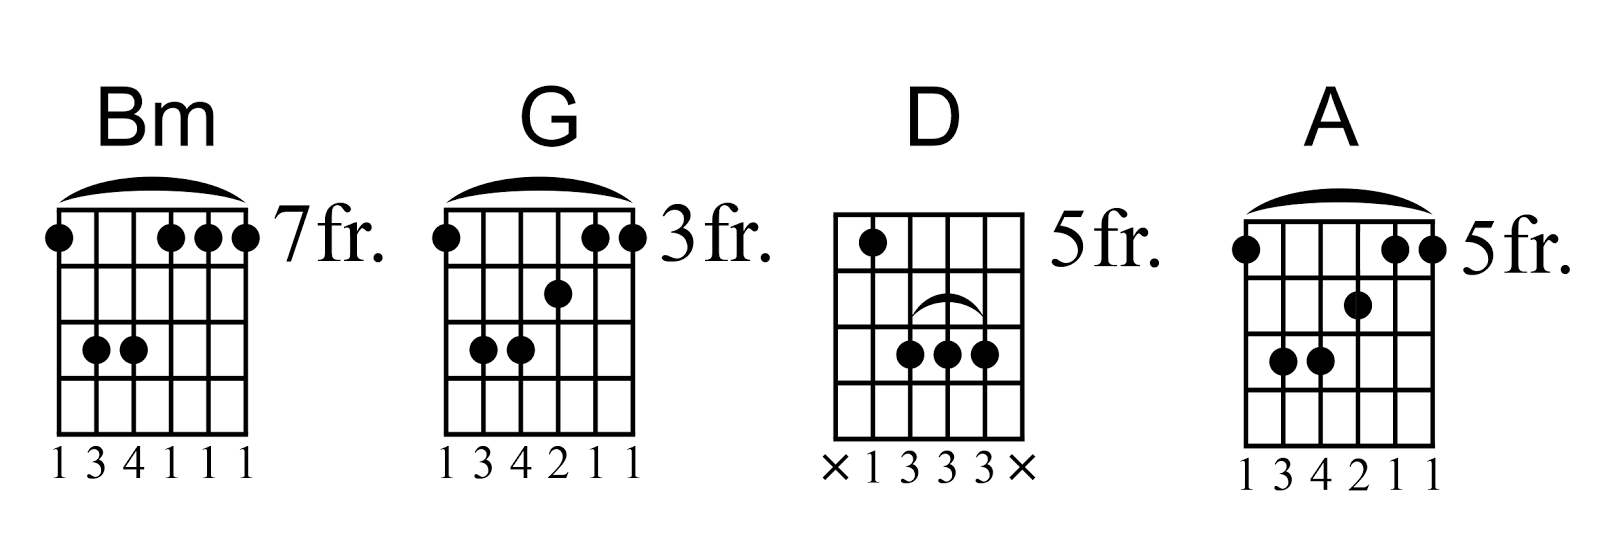 Guitar Chords From Good To Spectacular Creative Guitar Studio